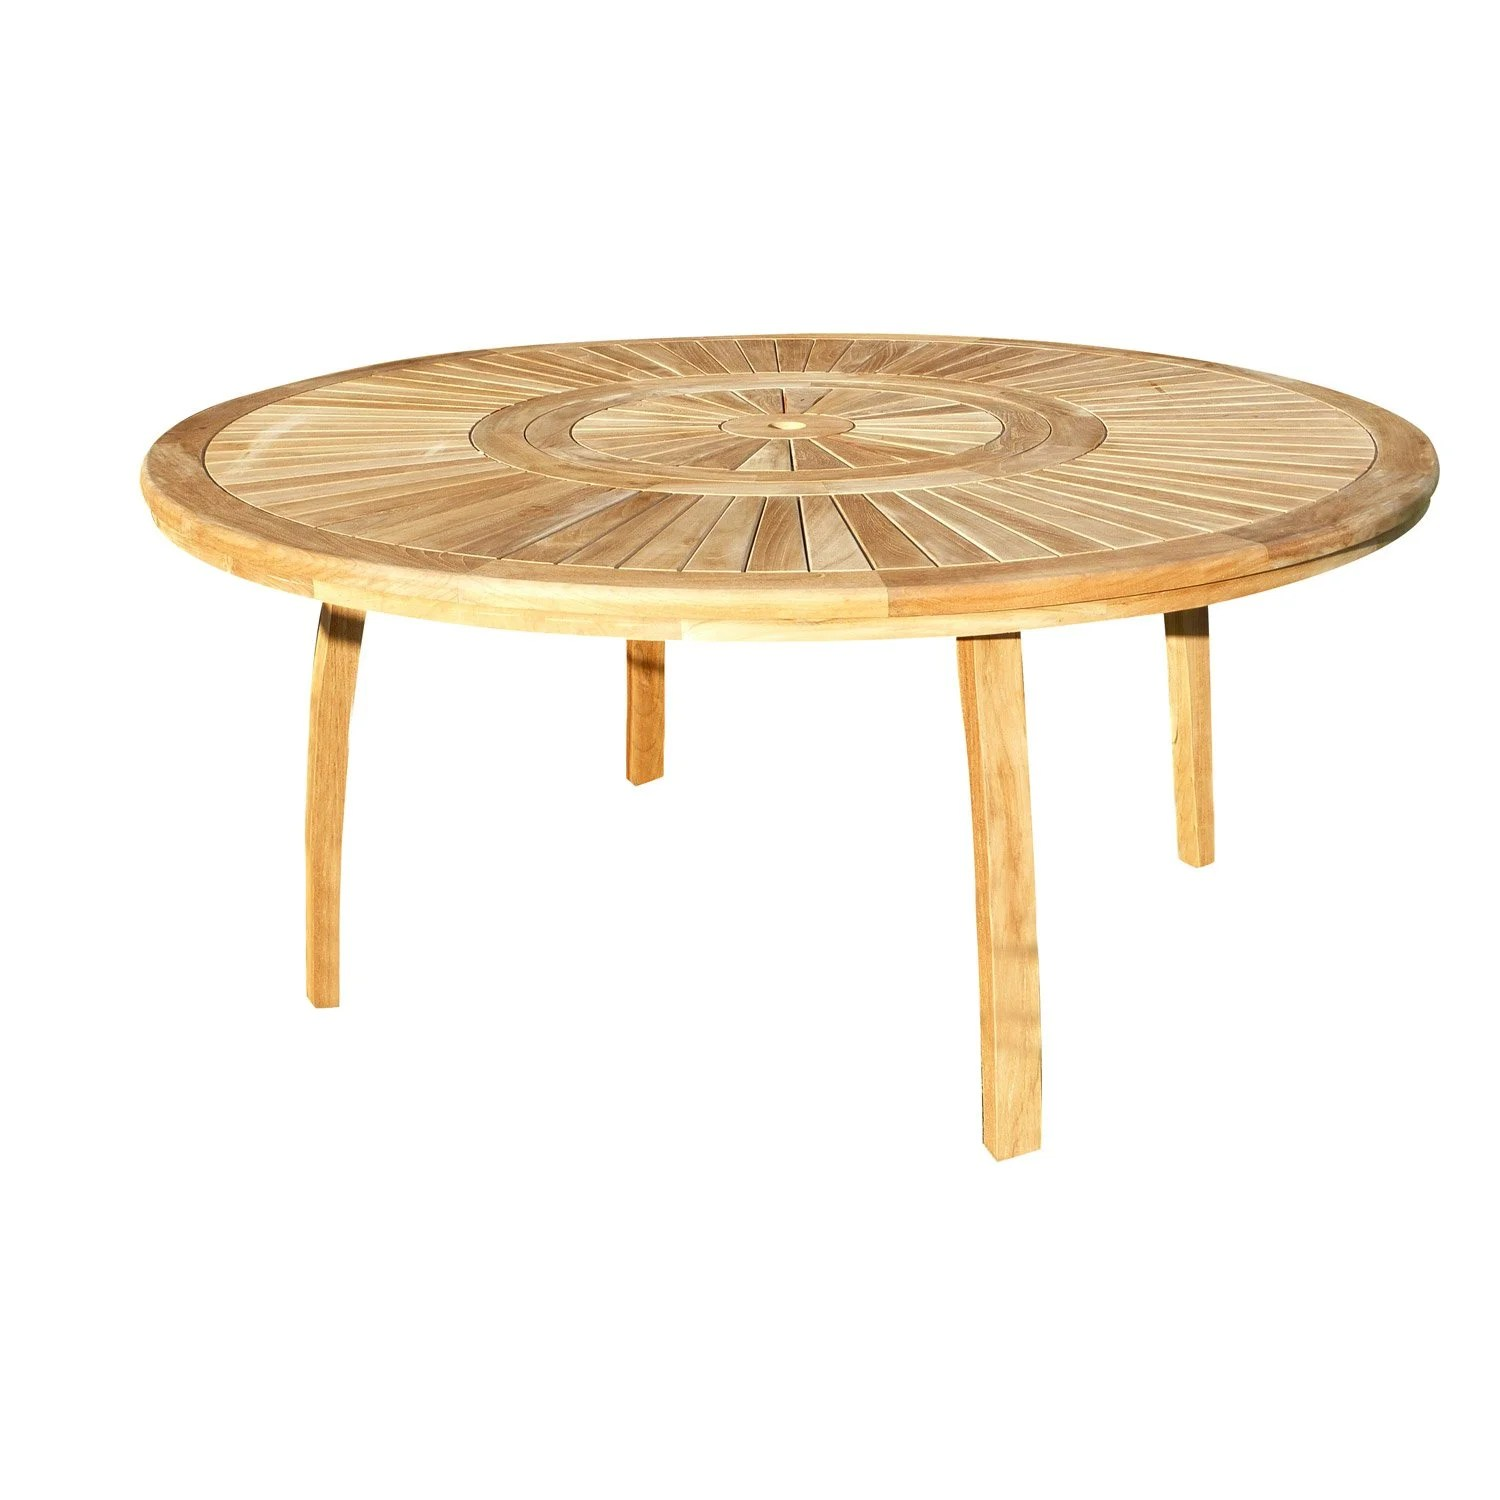 Table Jardin Ronde Teck Table De Jardin Orion Ronde Naturel 8 Personnes Leroy Merlin